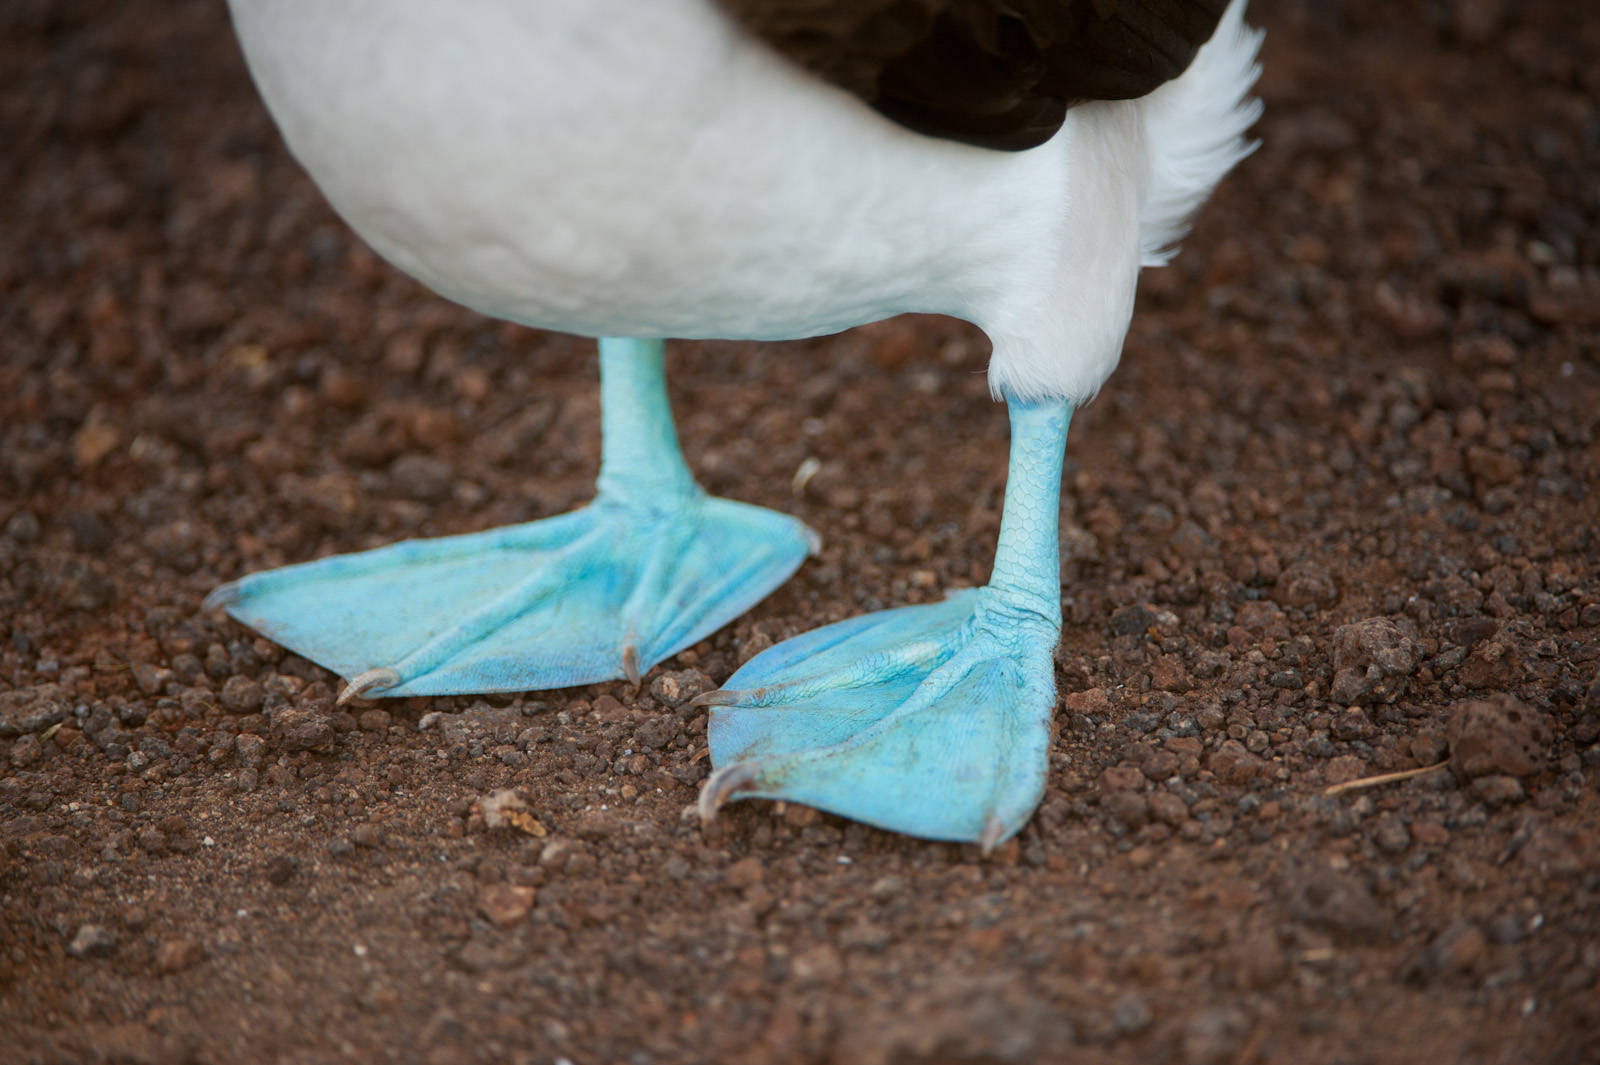 Photo: The webbed feet of the Blue-footed booby bird (Sula nebouxii) on North Seymour Island, part of the Galapagos Chain.